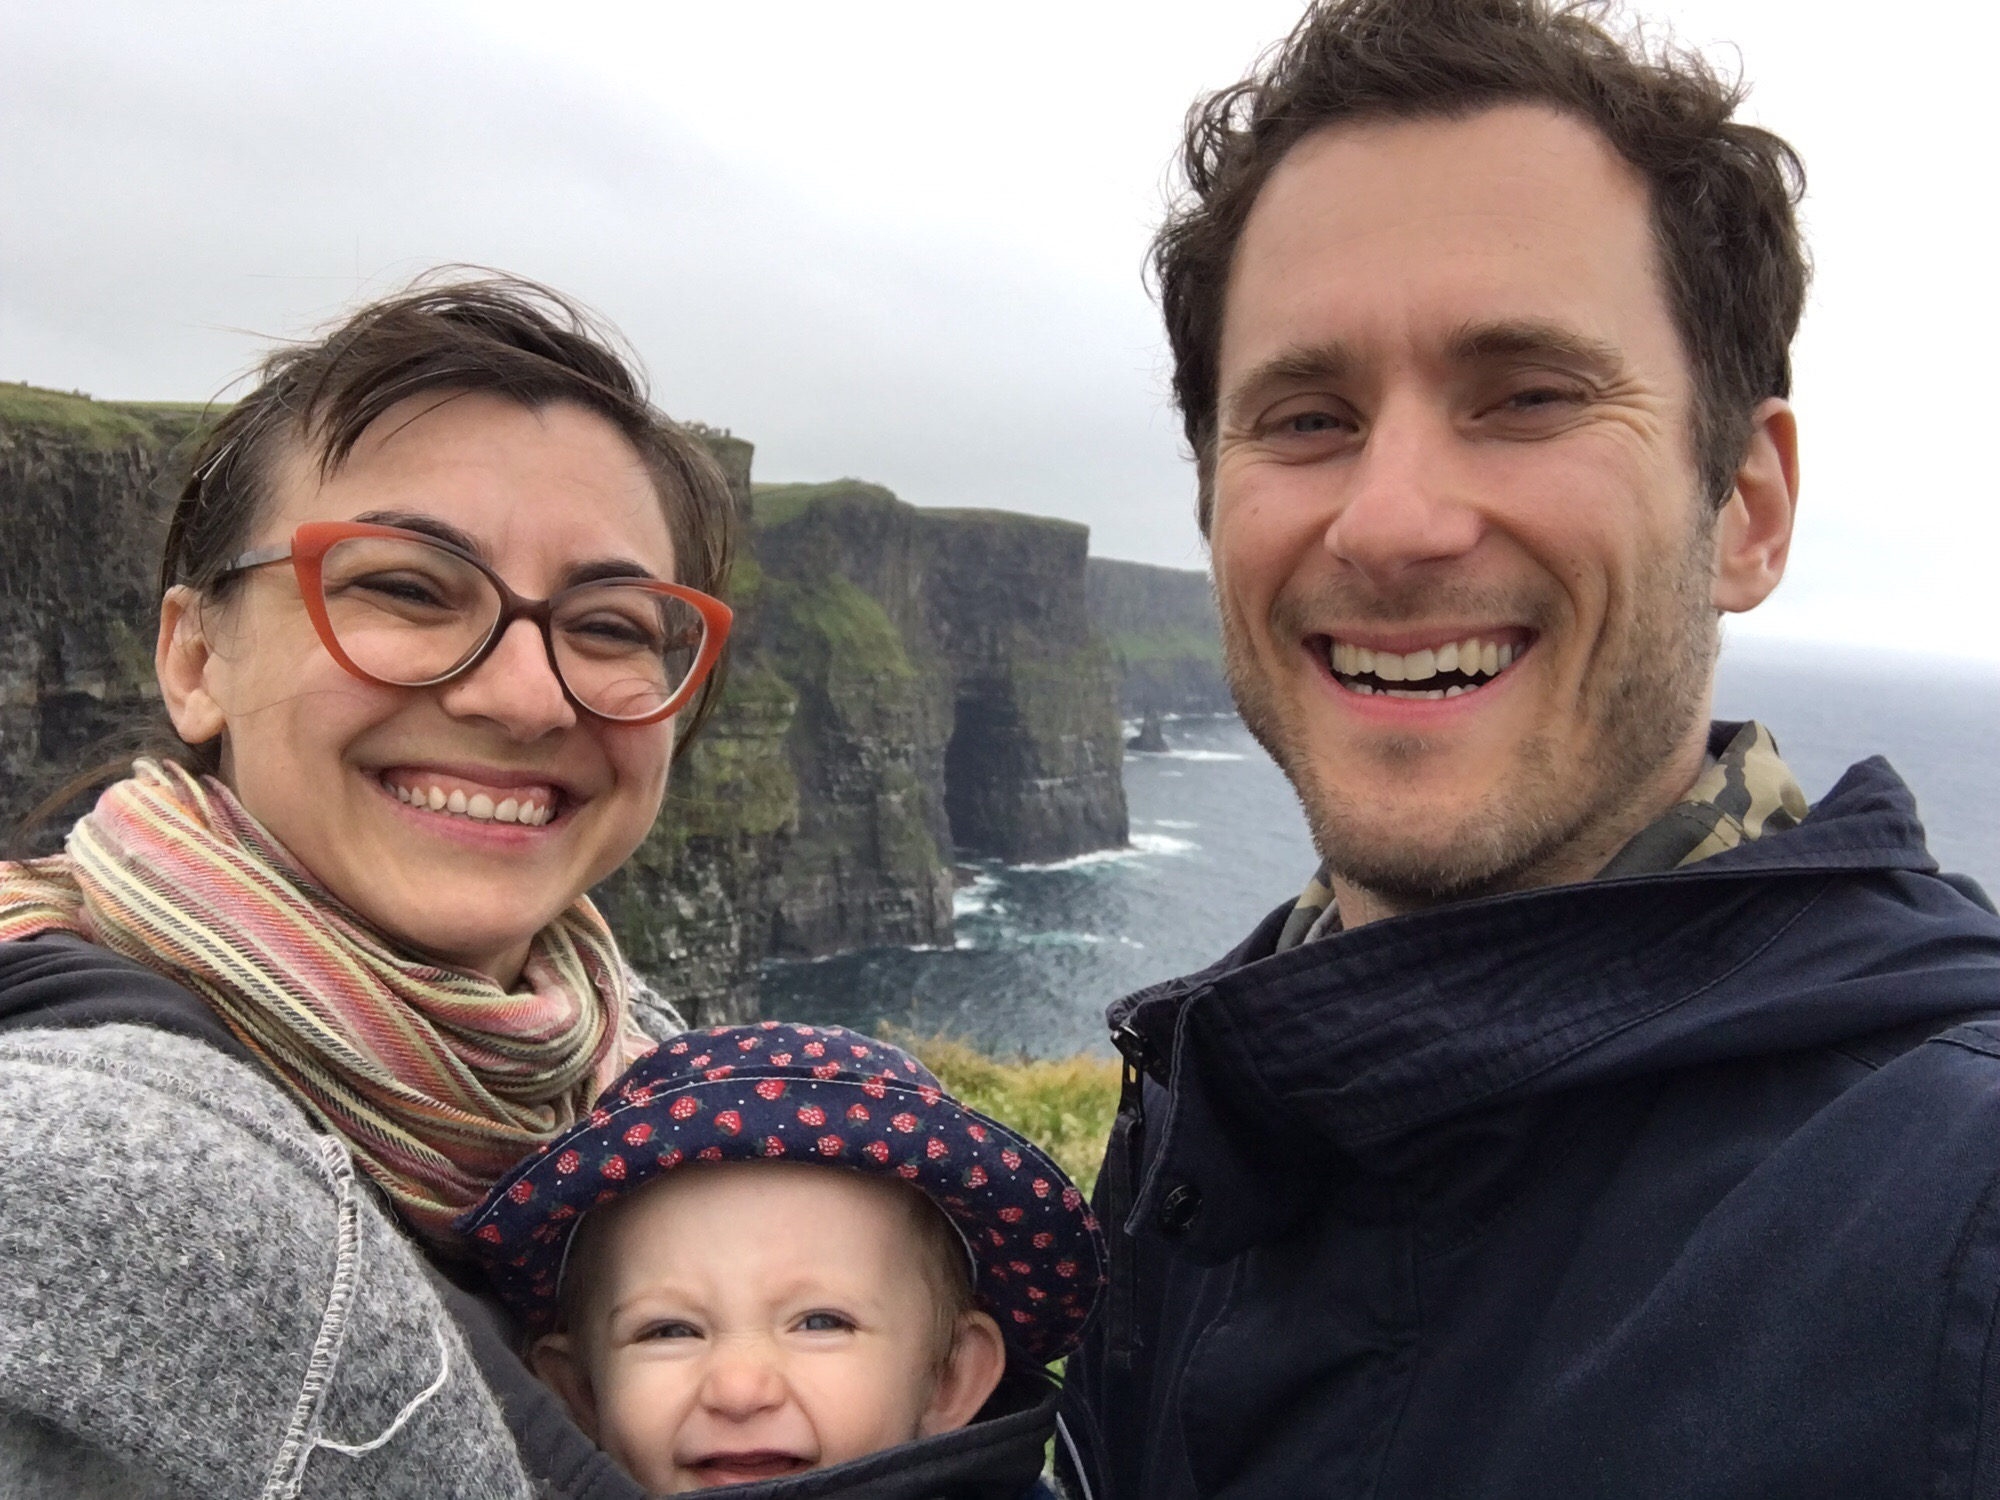 Alicia with her husband and daughter at the Cliffs of Moher, Ireland, this past June where they travelled so she could attend the 10th International Sponge Conference.